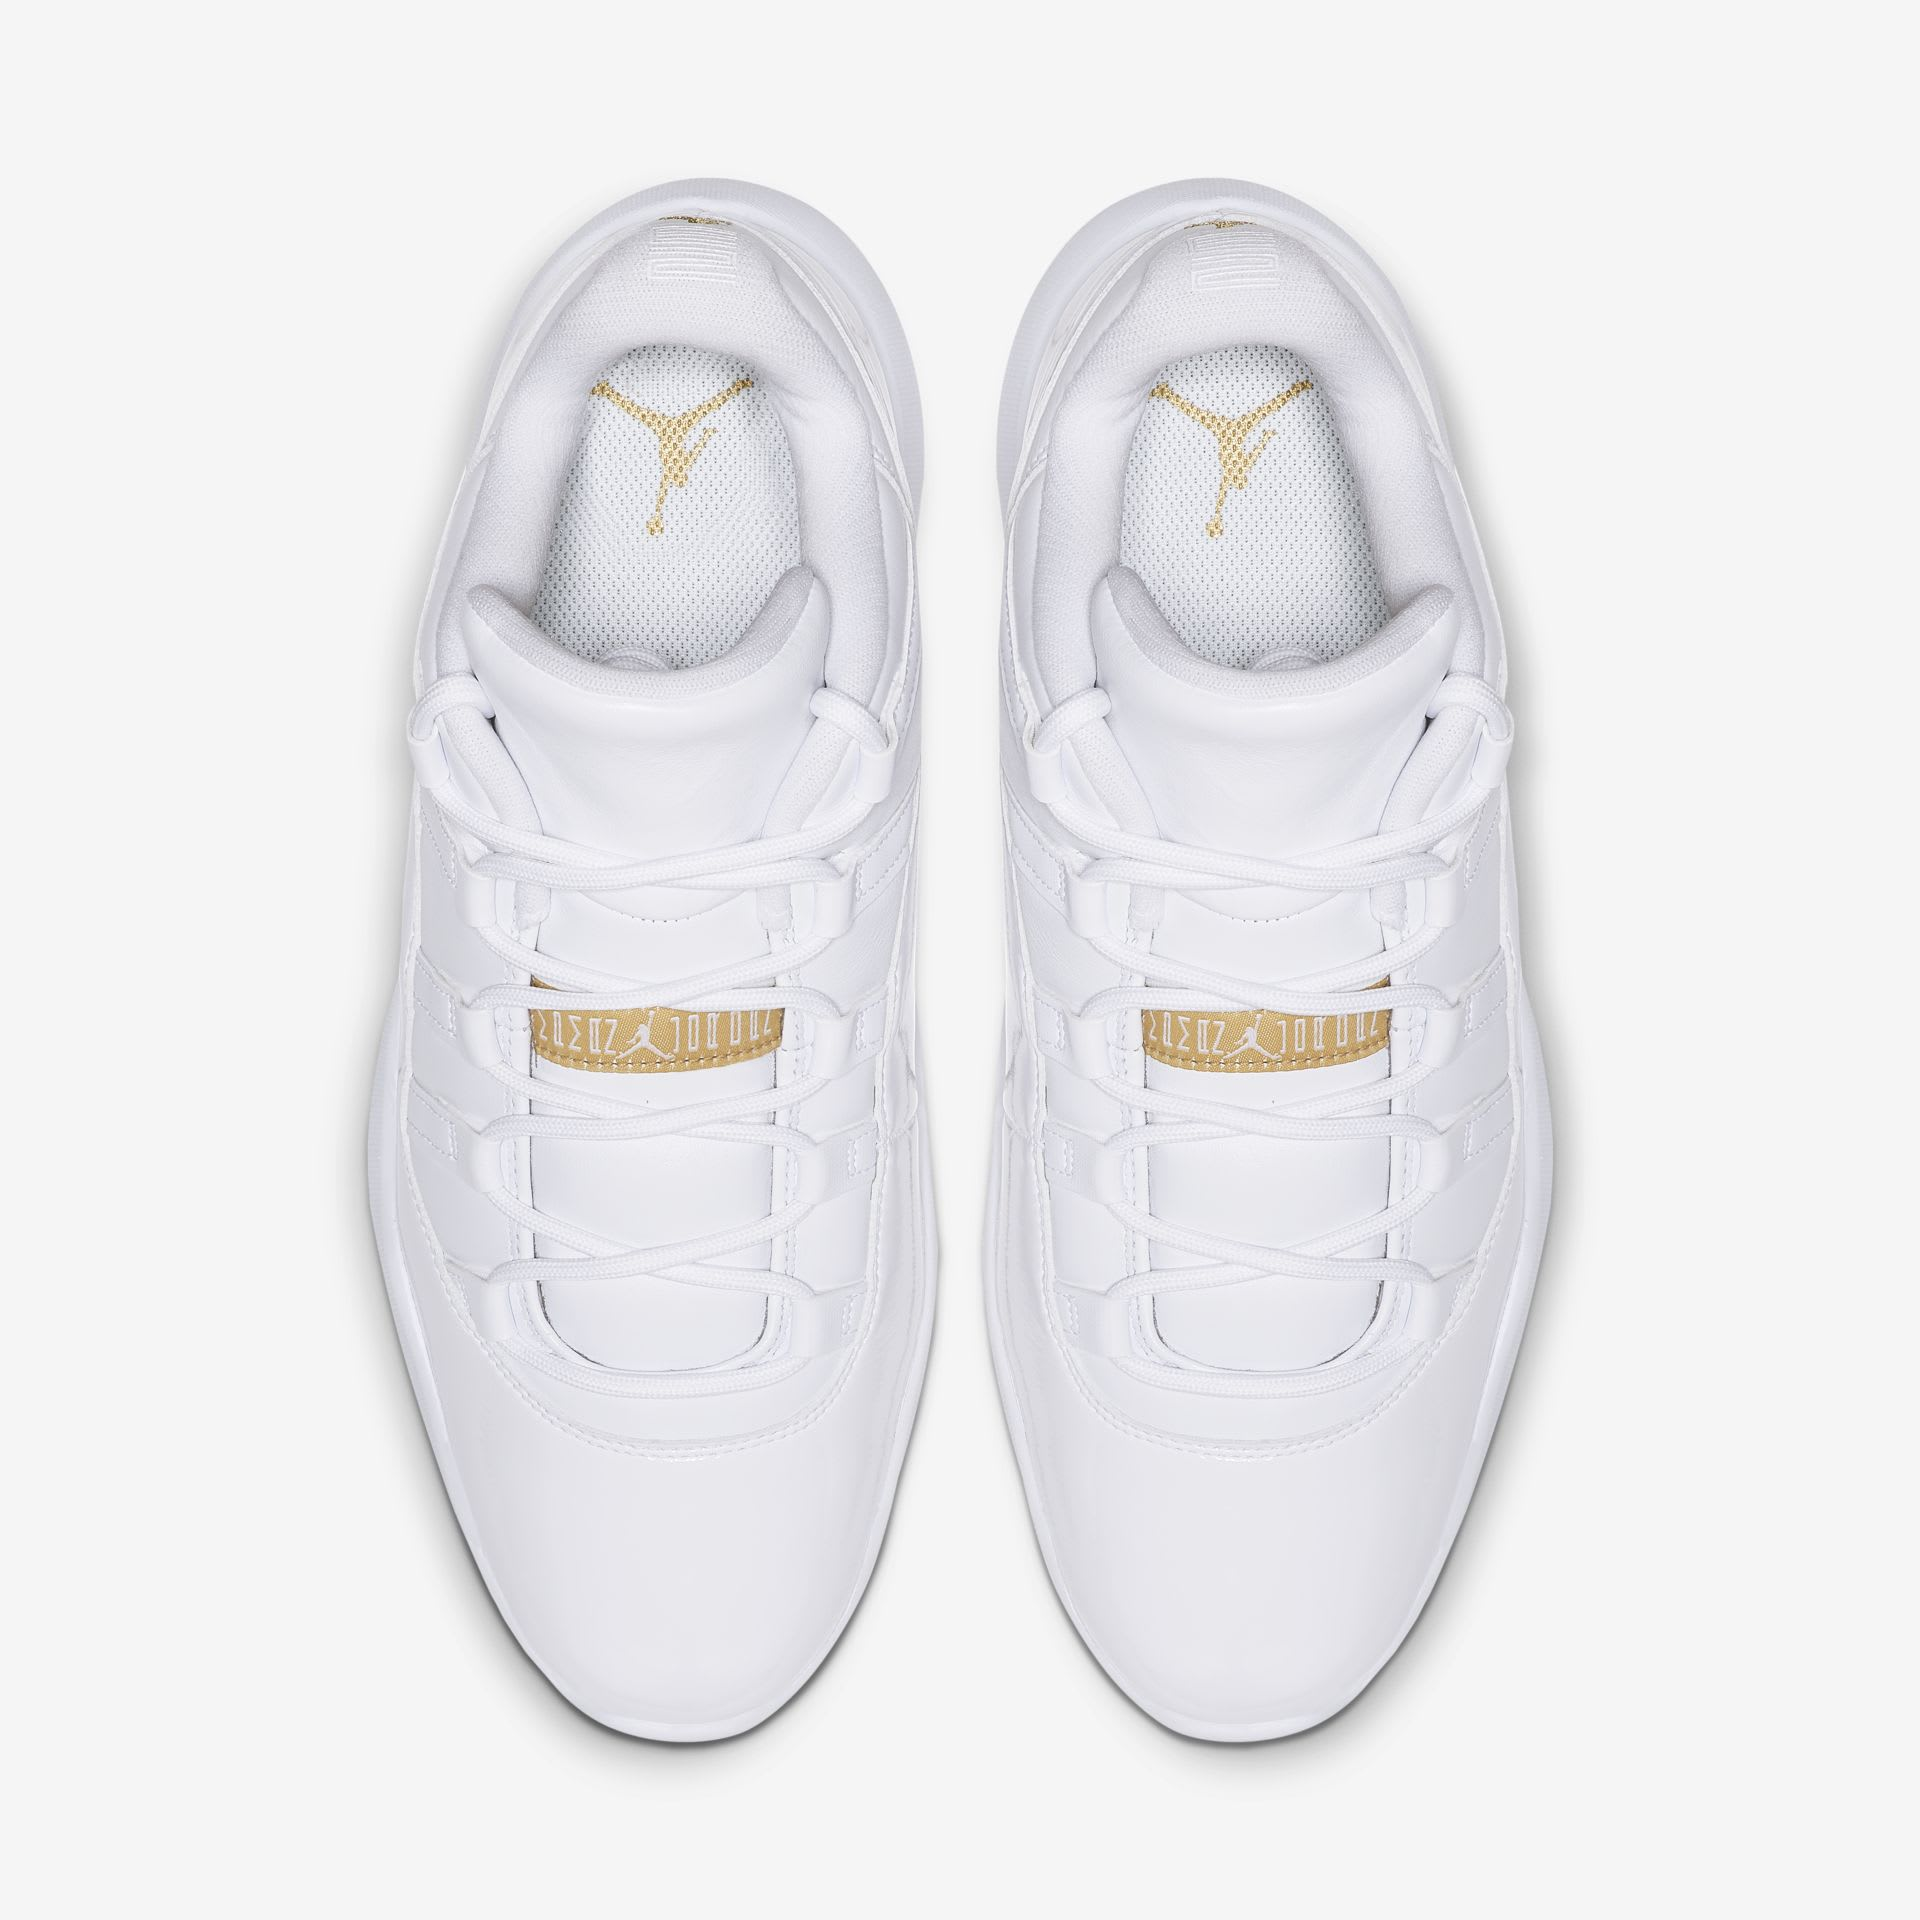 Air Jordan 11 Low Golf 'White/Metallic Gold' (Top)